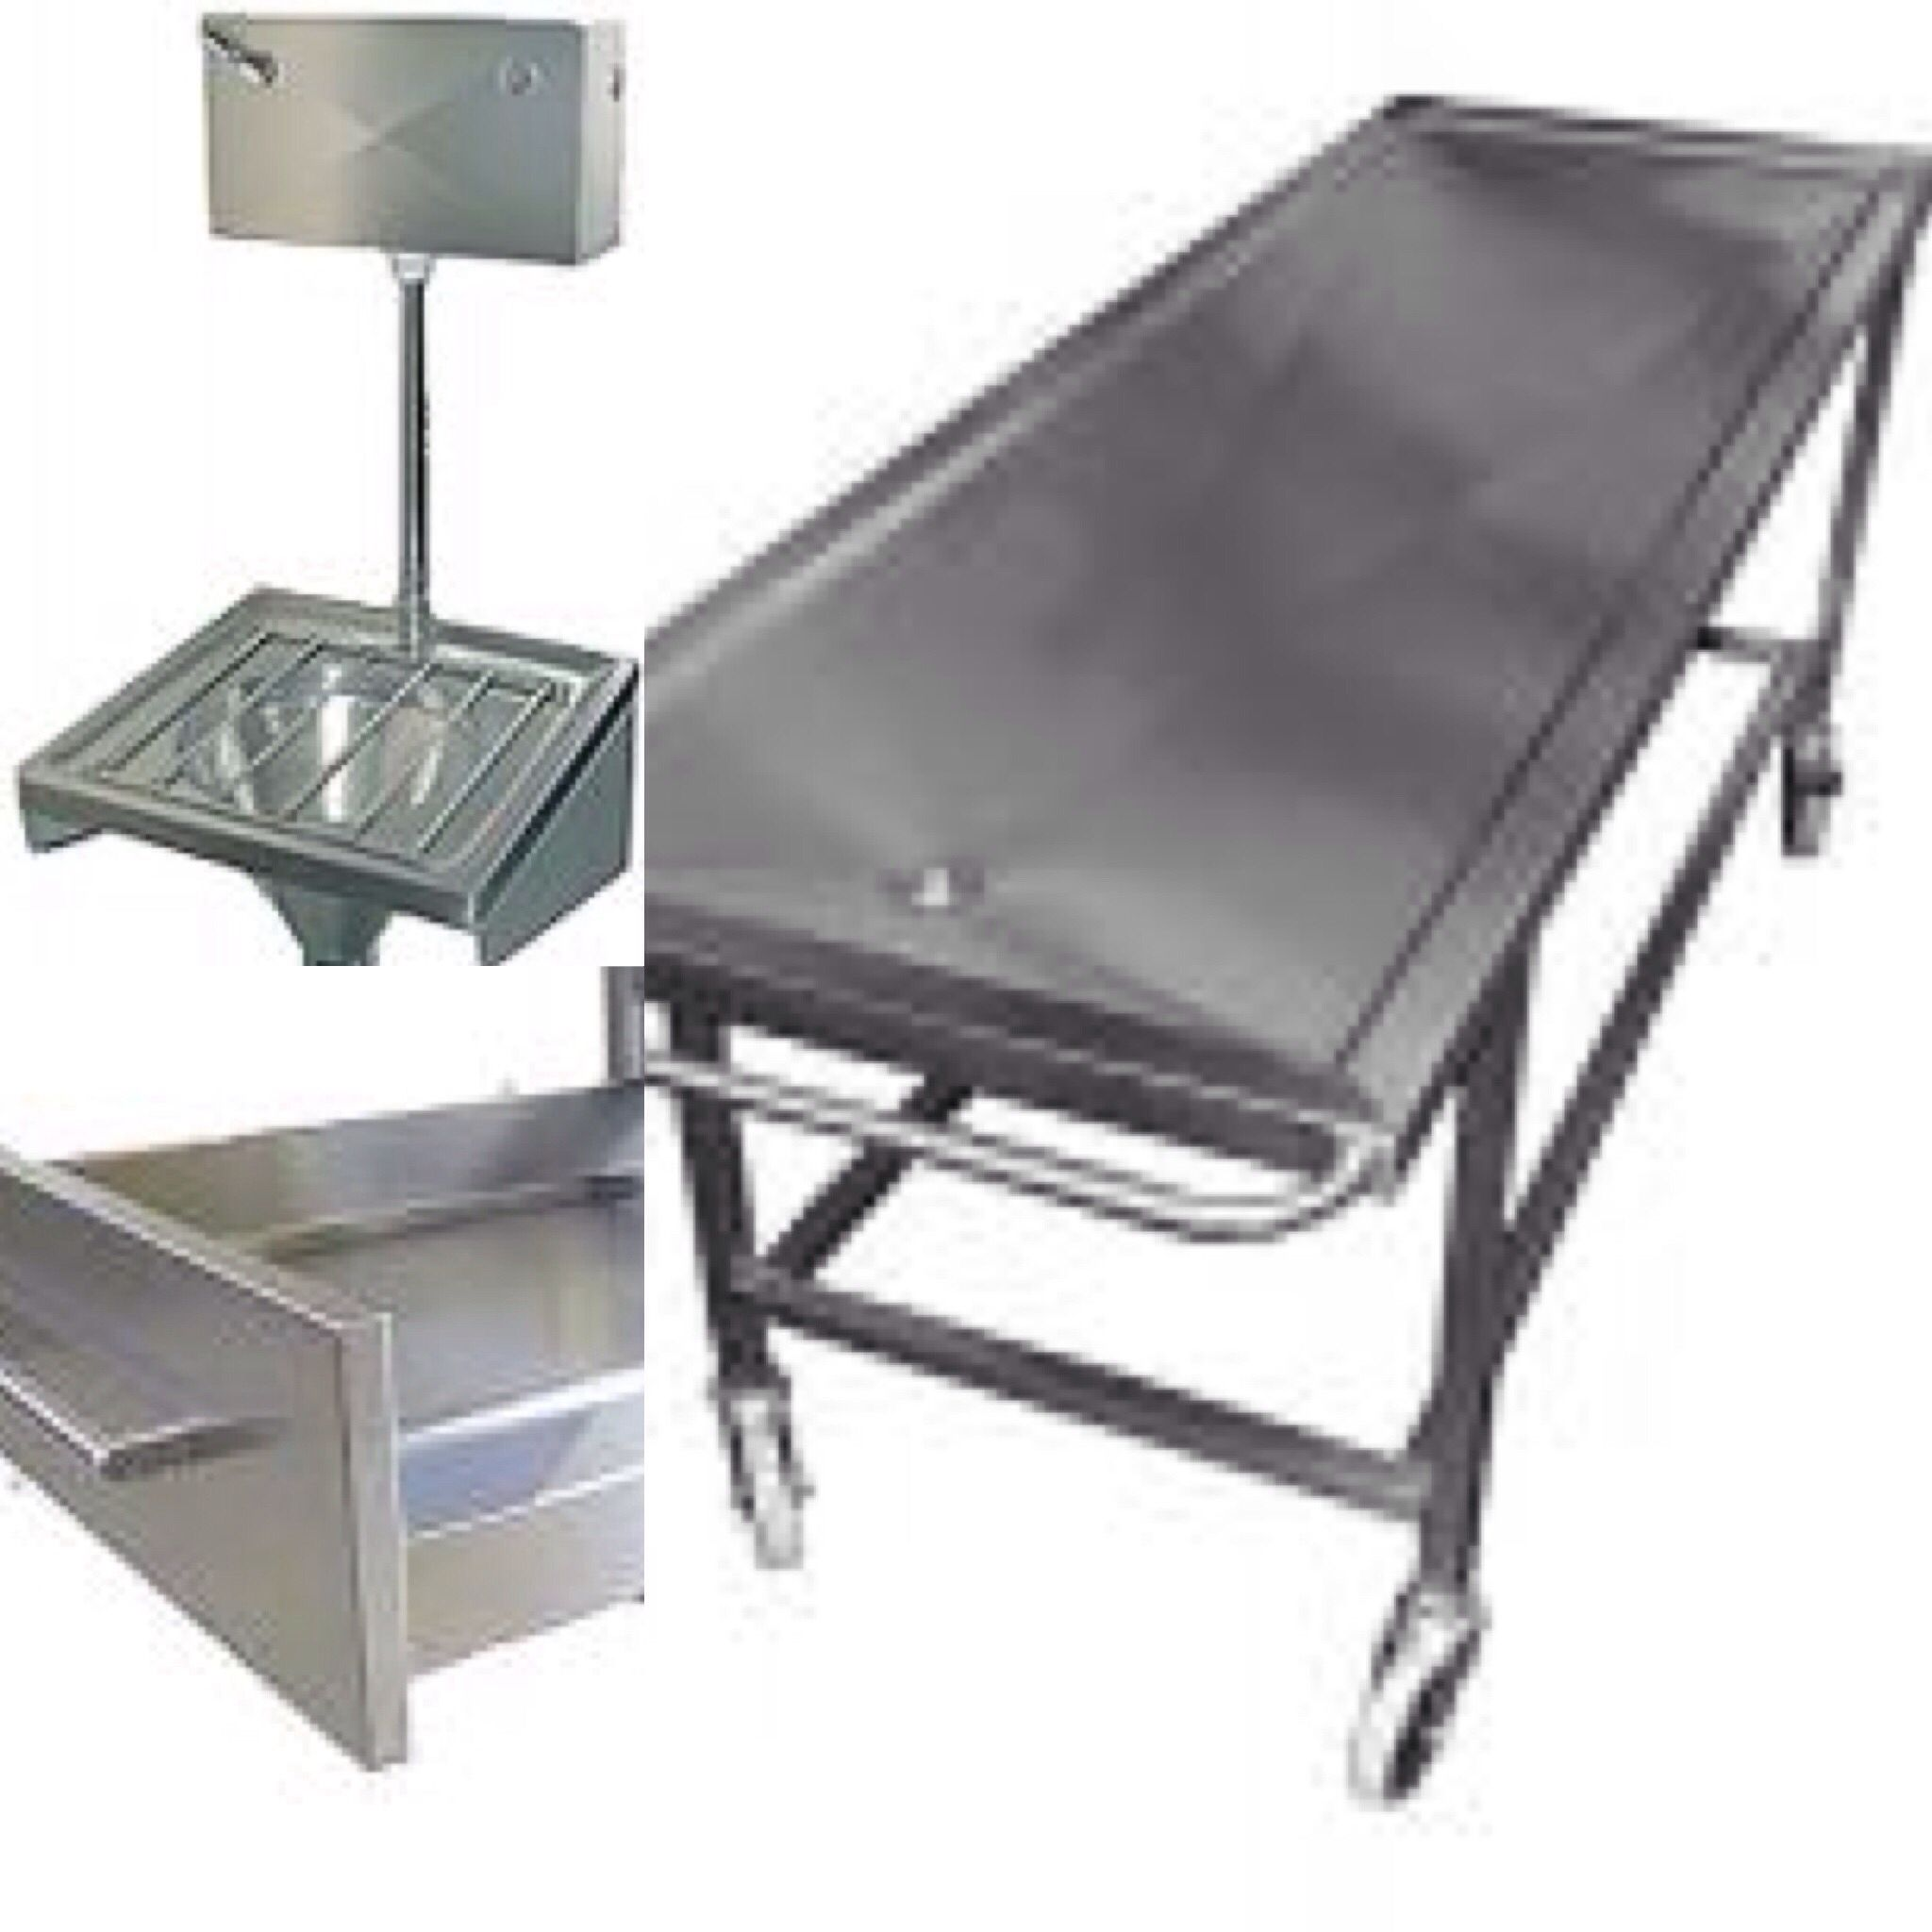 Stainless-steel equipment for use in #hospital #mortuaries or